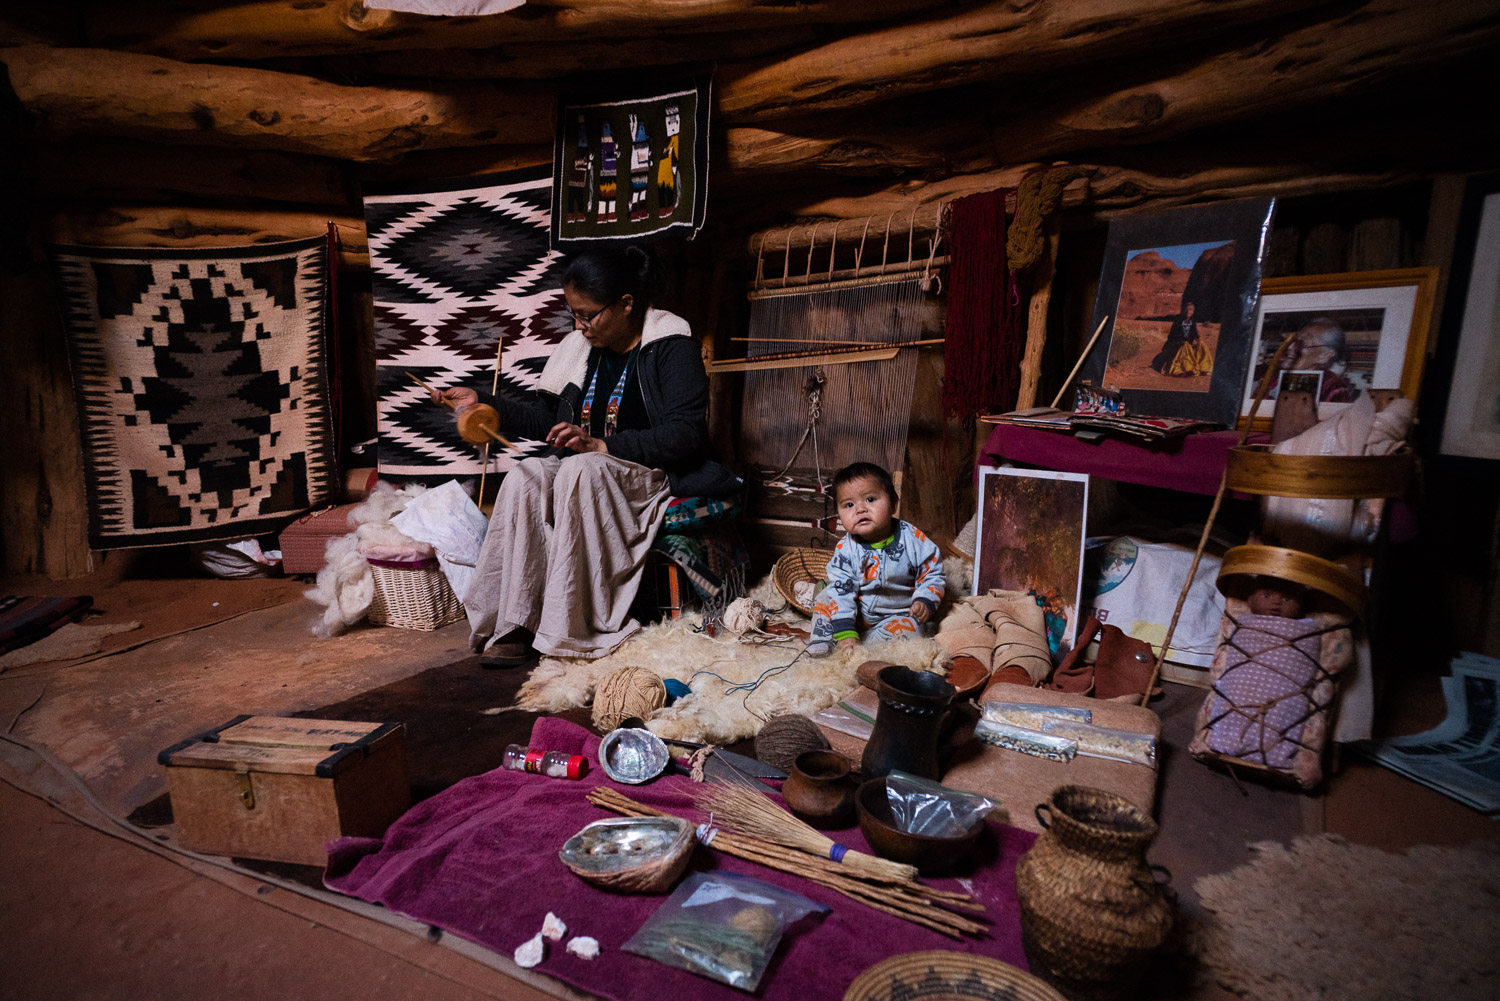 Inside the hogan, a woman works on traditional crafts while her child chills out on what looked like a comfy sheep skin.